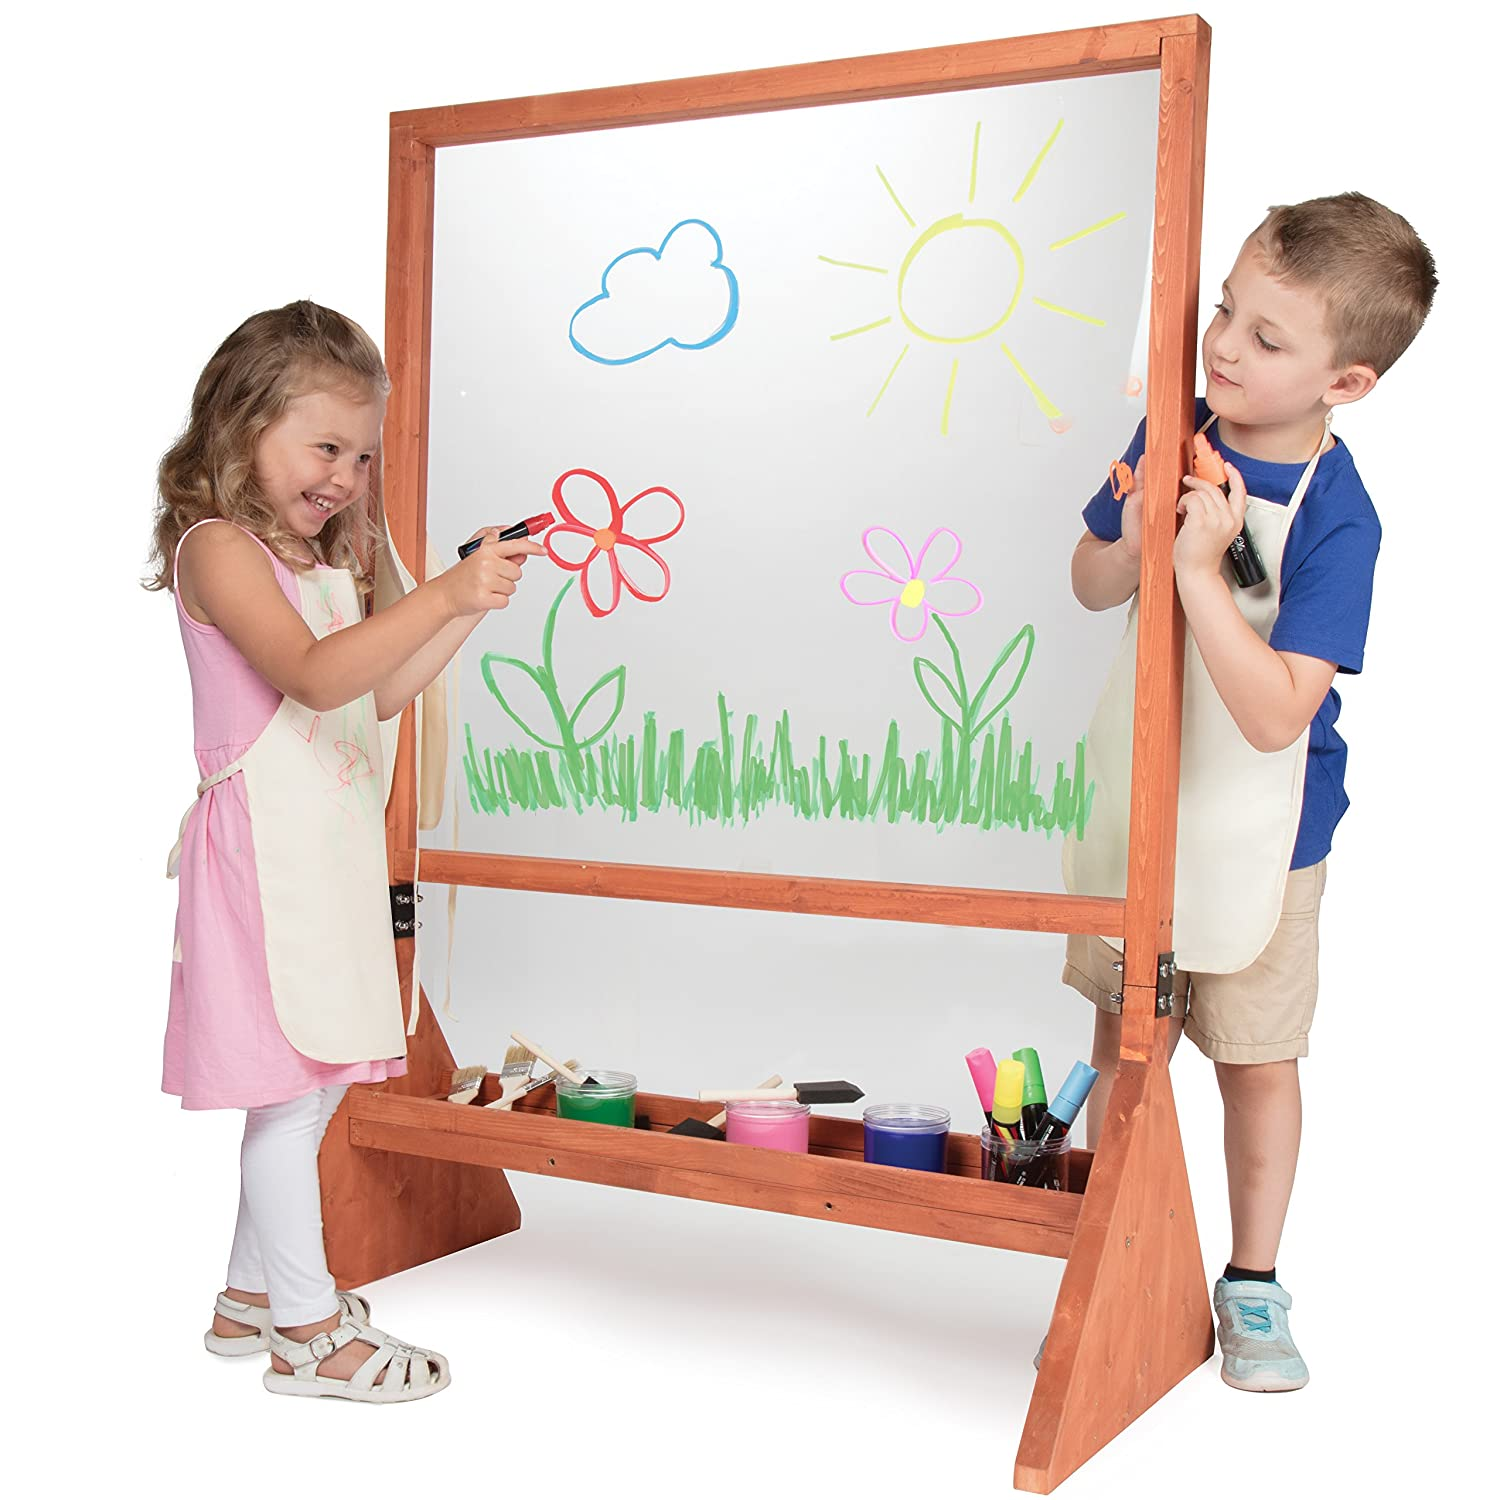 Svan Double Sided Indoor Outdoor Plexiglass Art Easel 21 X 36 X 51 In Easy To Clean Kids Can Draw Or Paint On Both Sides